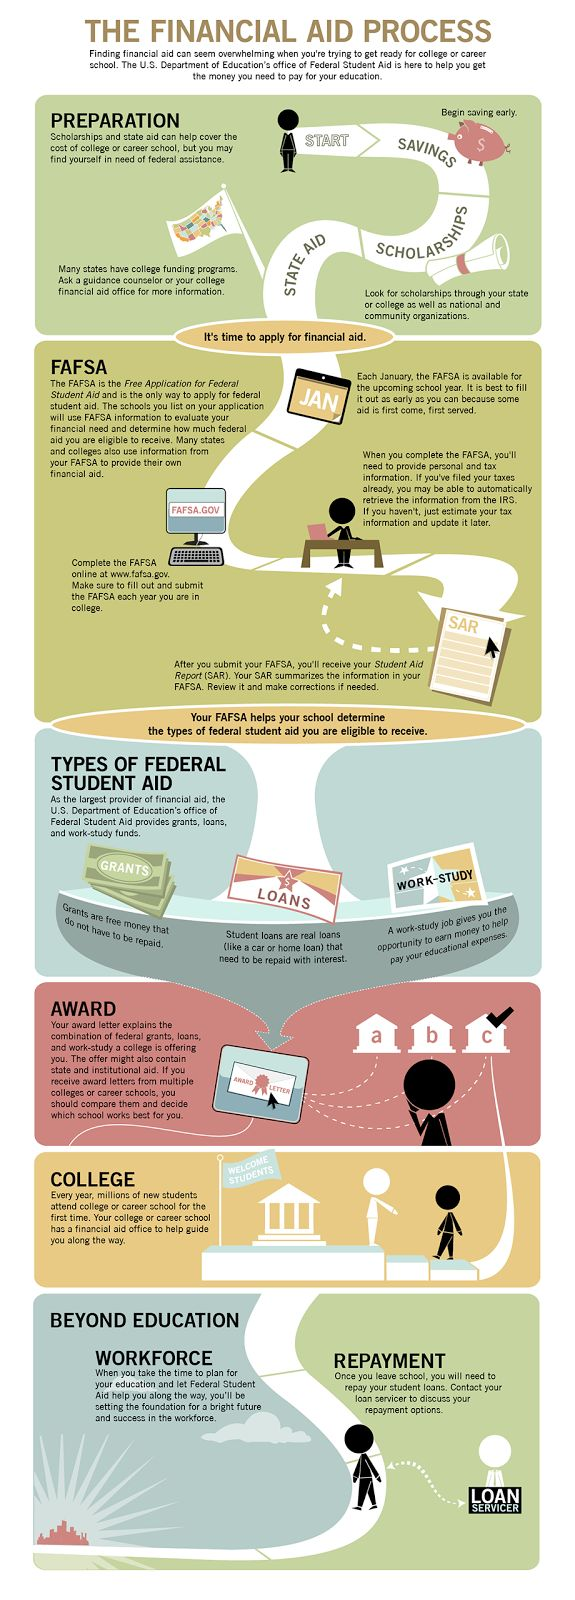 17 best images about infographics student paper this is a link to the federal student aid website and has all sorts of information on how to prepare for college such as a check list broken down